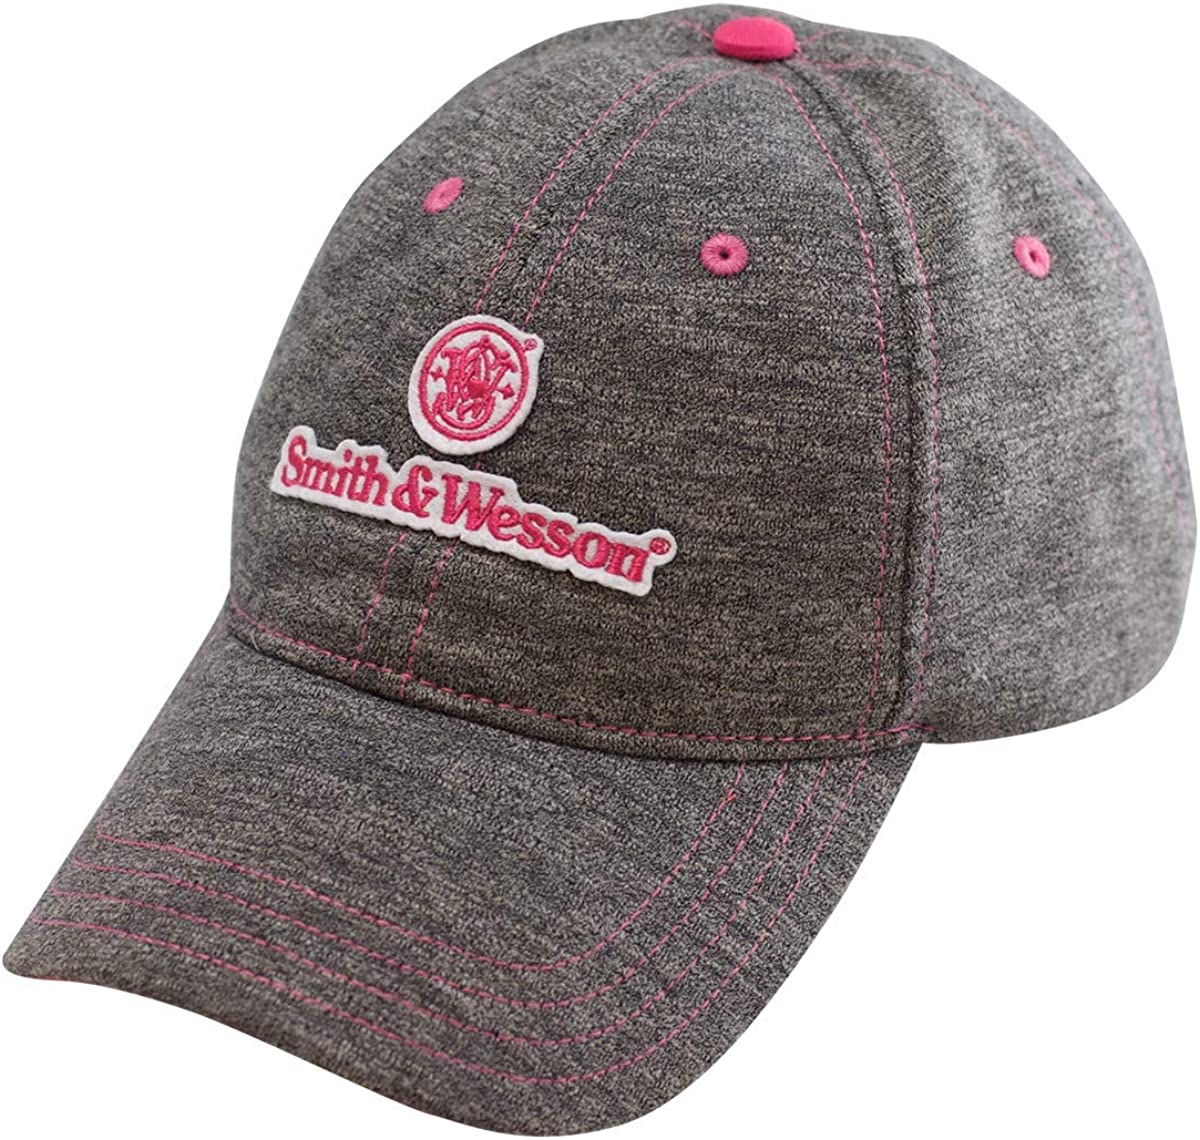 Smith Wesson SW Ladies Space Dyed Offici Cap Max 69% OFF shop with - Pink Logo